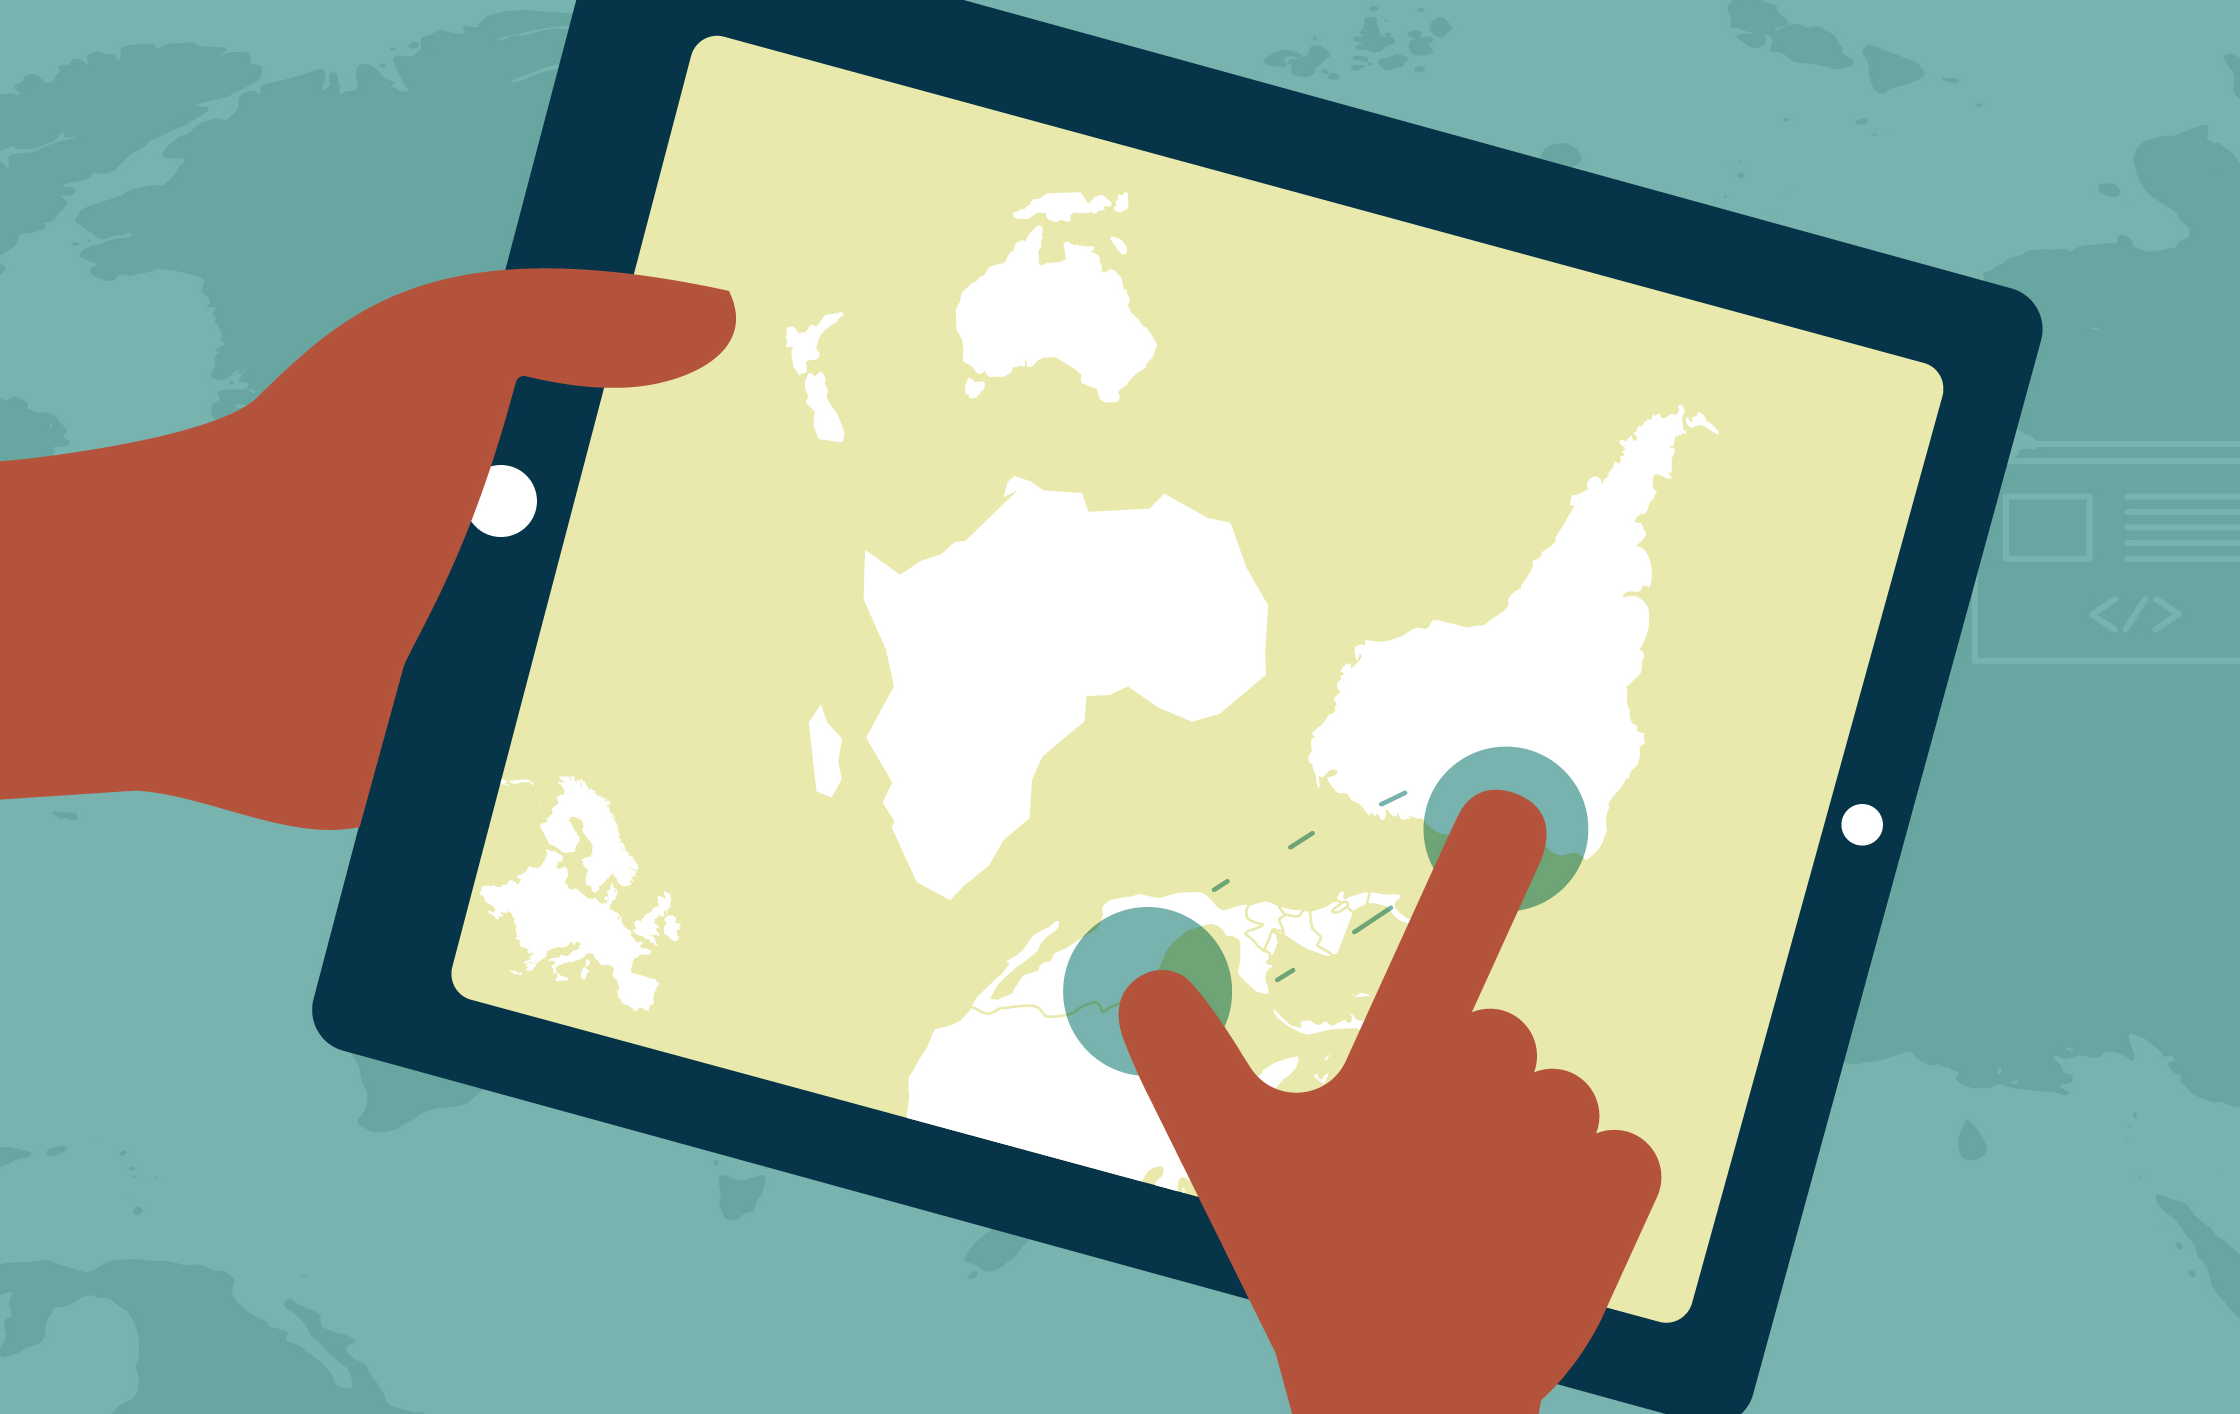 Illustration of hands touching a tablet with a non-Eurocentric map